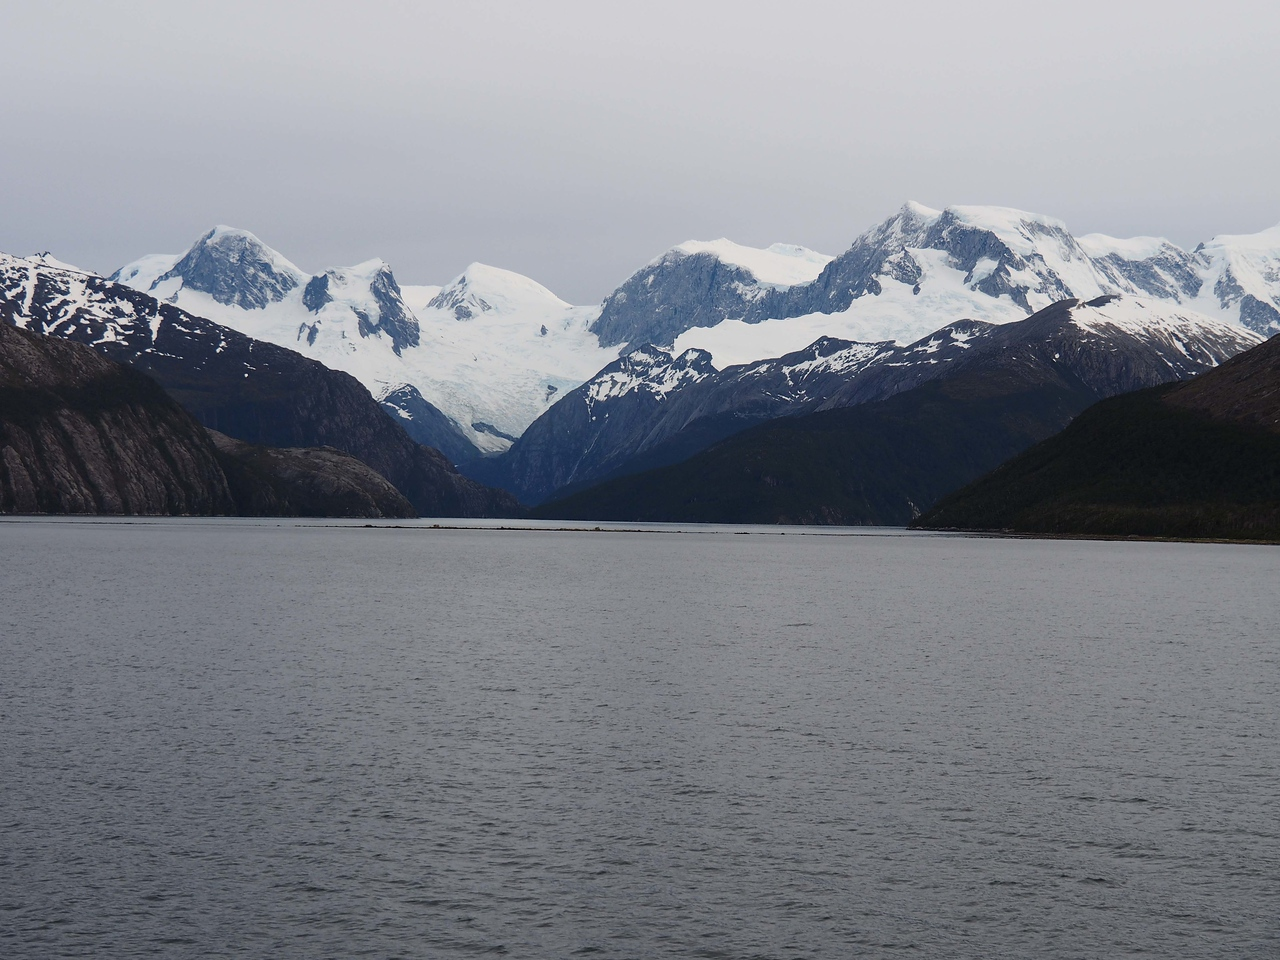 Sailing into the fjord of the Pia Glacier